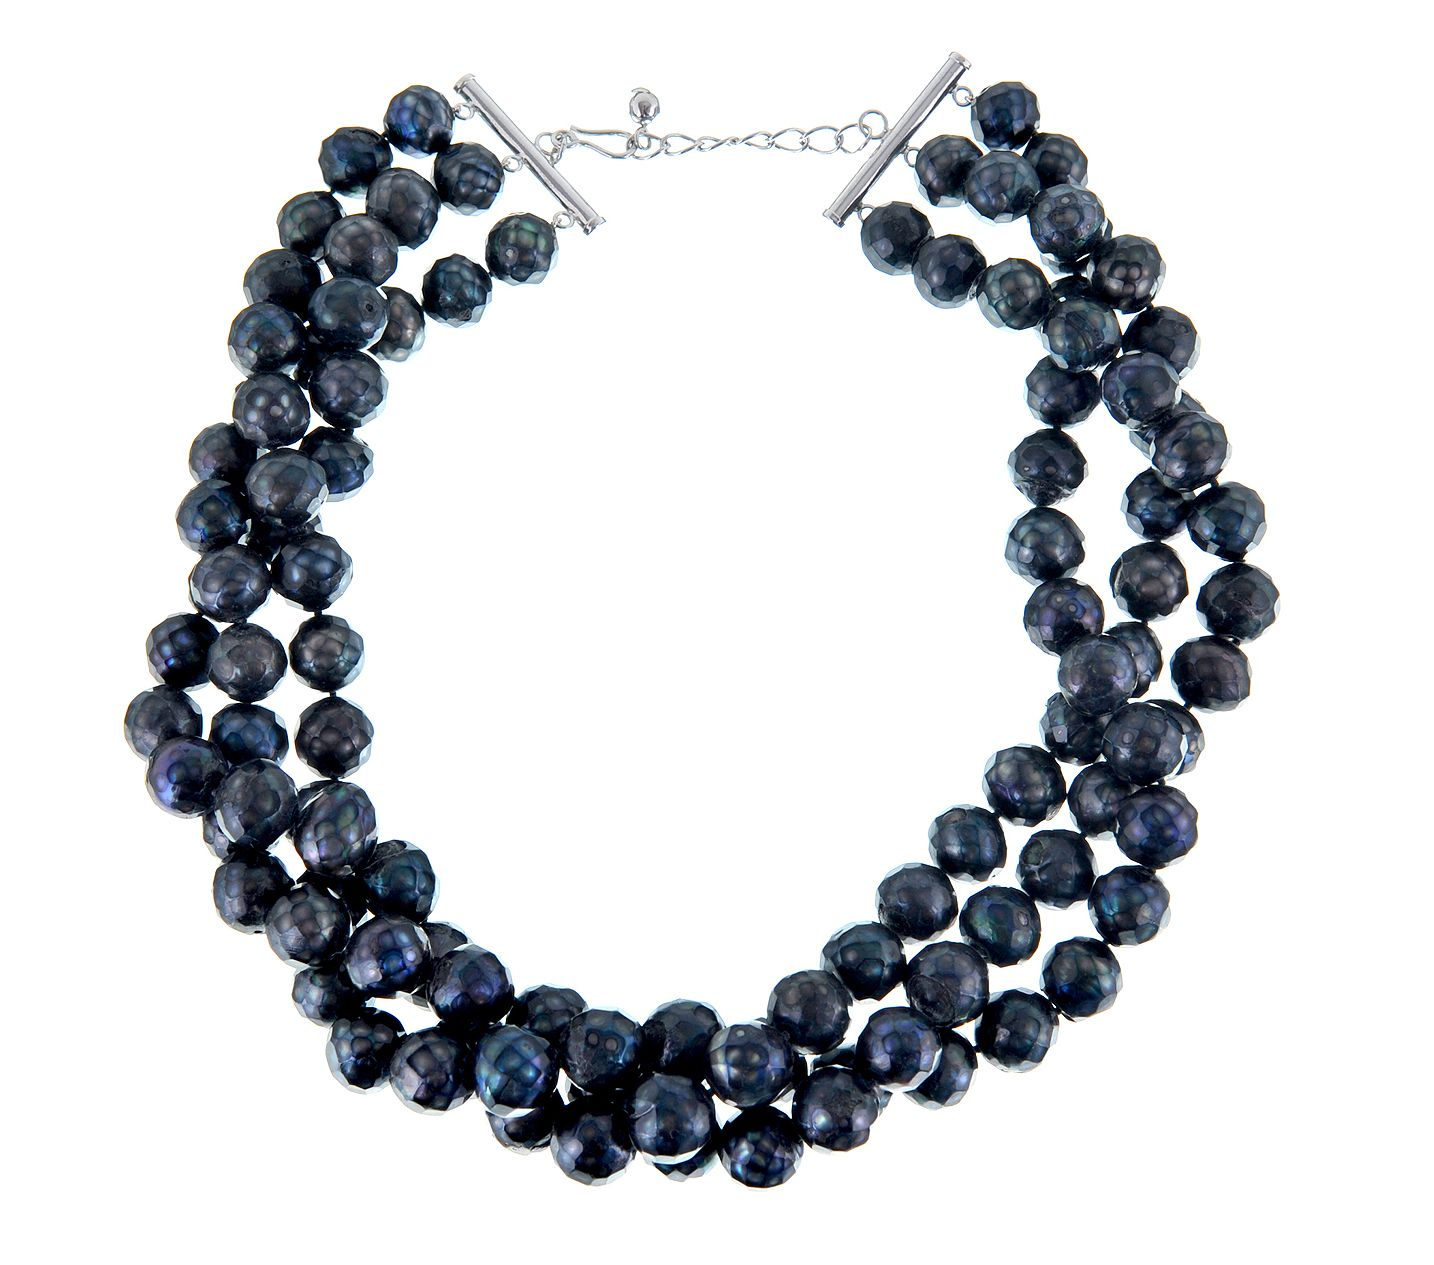 Faceted Large Black Freshwater Pearl Necklace